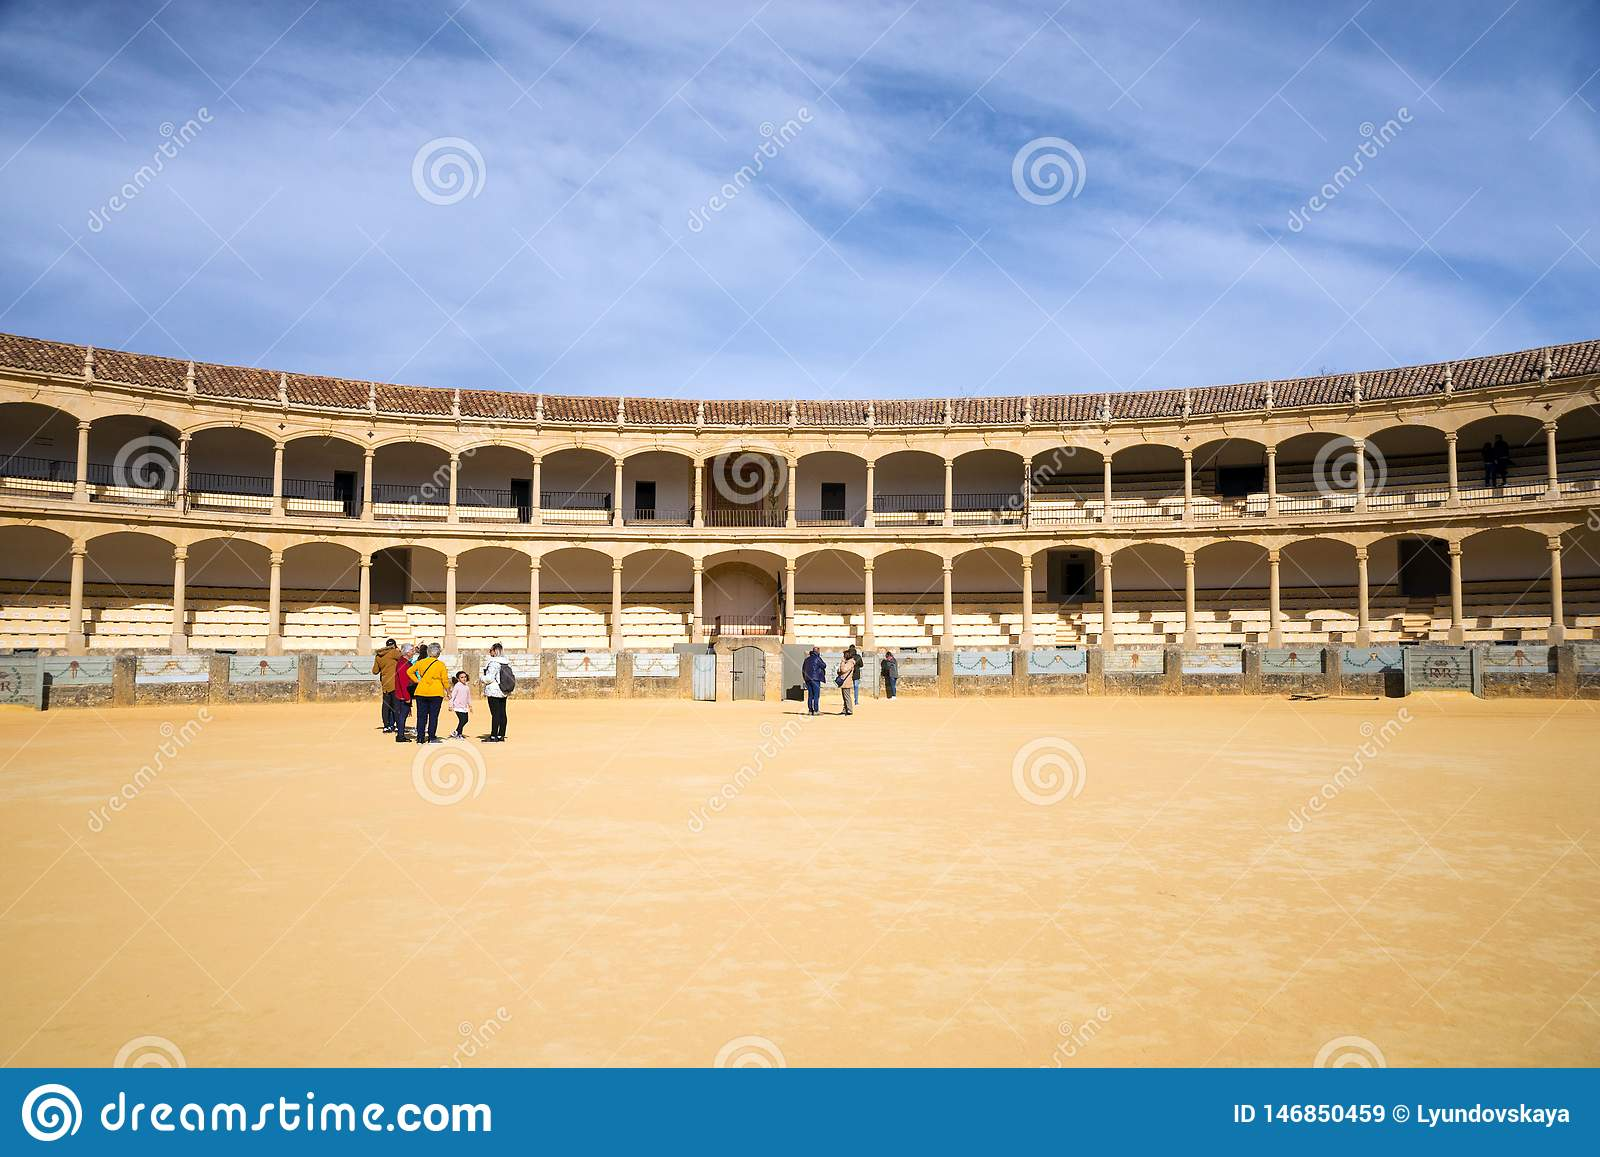 The Largest And Most Famous Spanish Bullring Is The Plaza De Toros